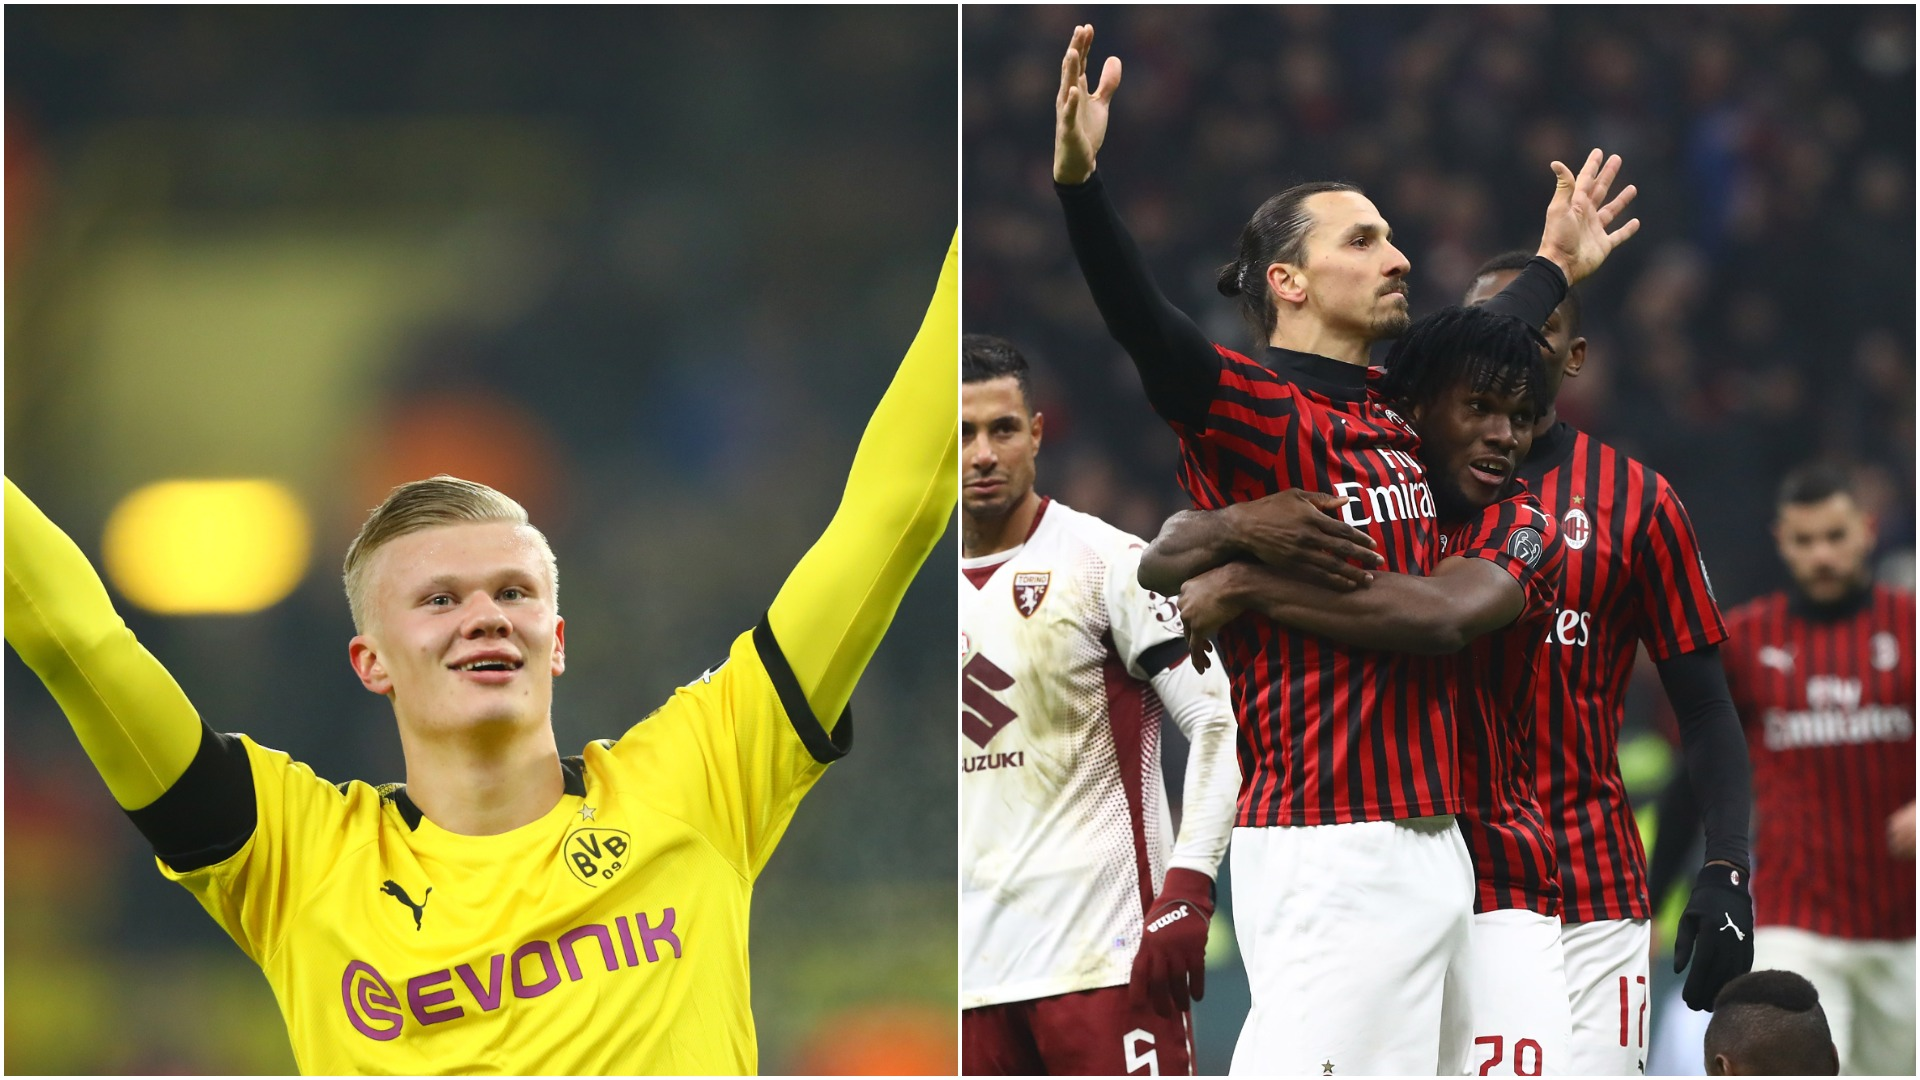 Ibrahimovic to Milan, Haaland to Dortmund, Minamino to Liverpool – the best deals of the January transfer window